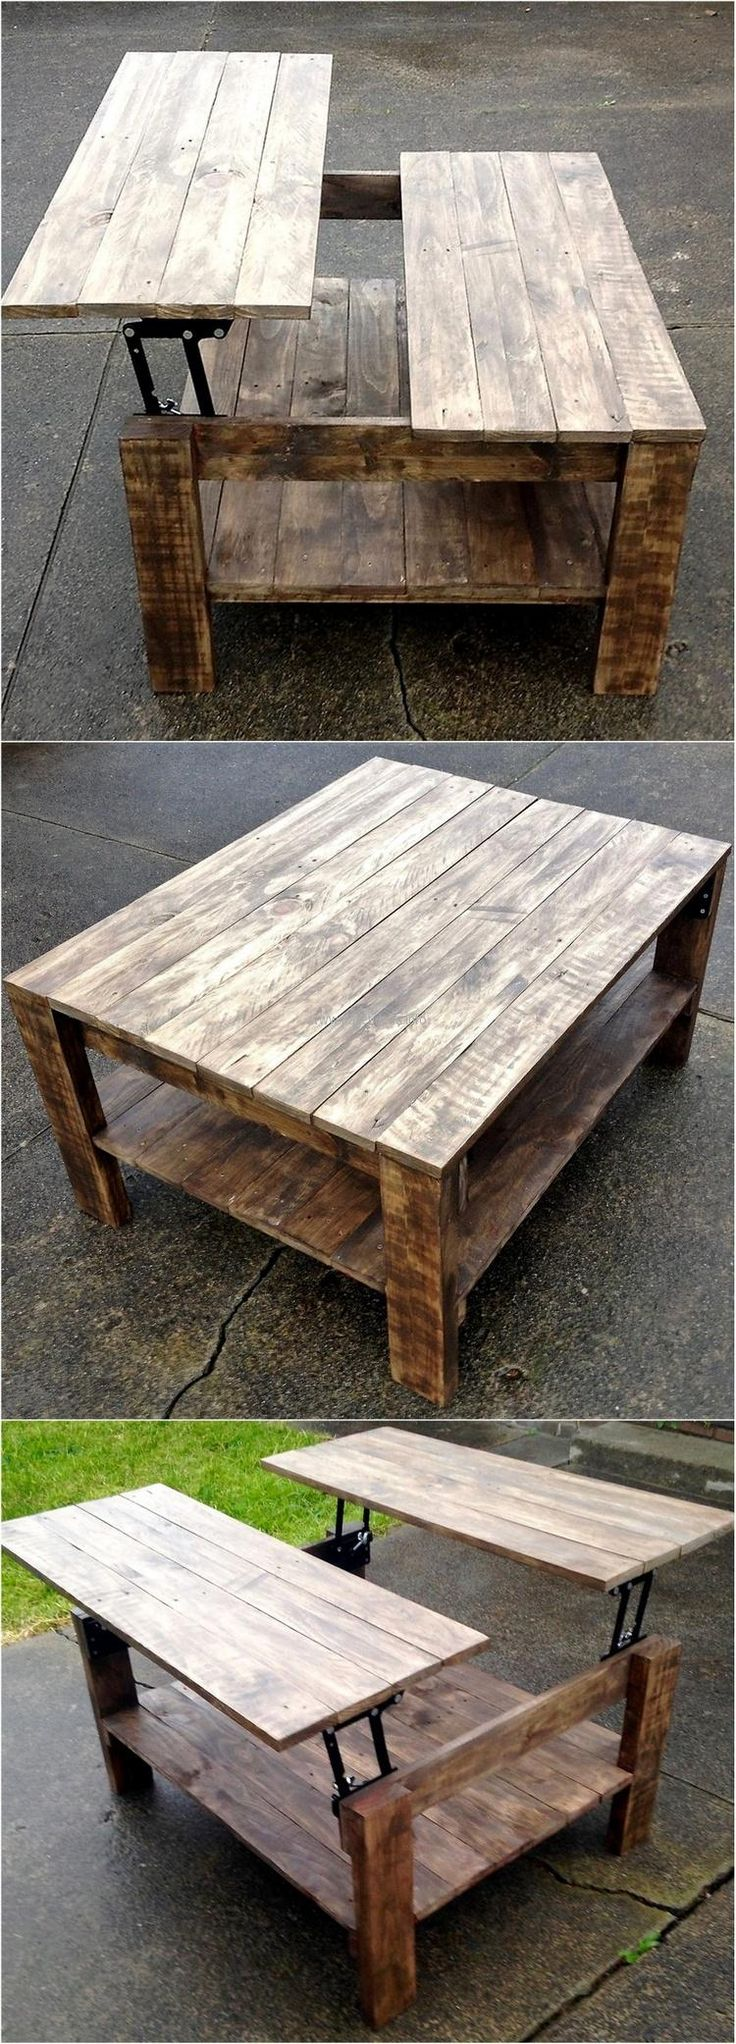 Best 25 Pallet Ideas Ideas On Pinterest Pallet Projects Pallets And Pallet Ideas Pics